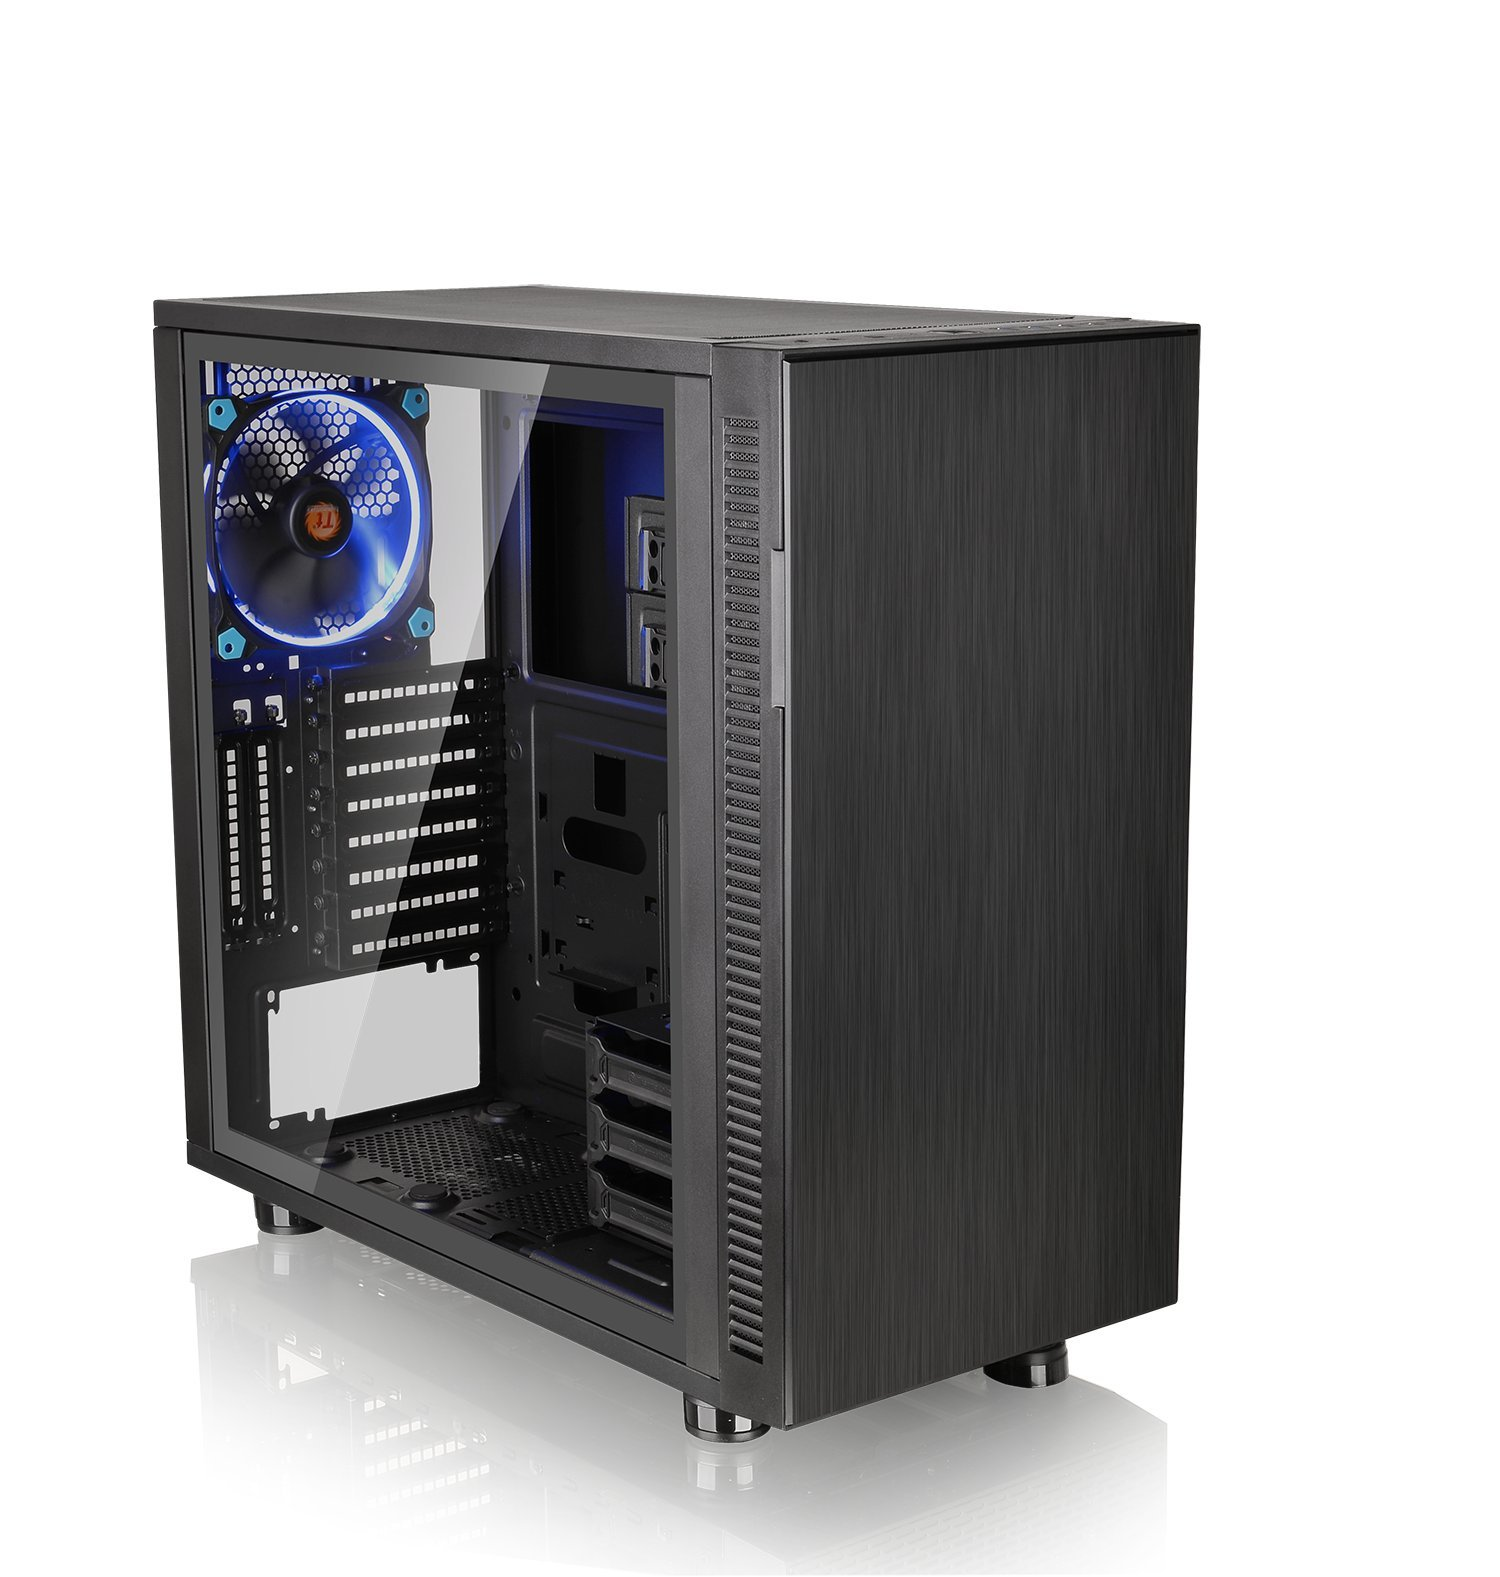 Thermaltake Suppressor F31 Tempered Glass Edition SPCC ATX Mid Tower Tt LCS Certified Ultra Quiet Gaming Silent Computer Chassis CA-1E3-00M1WN-03 by Thermaltake